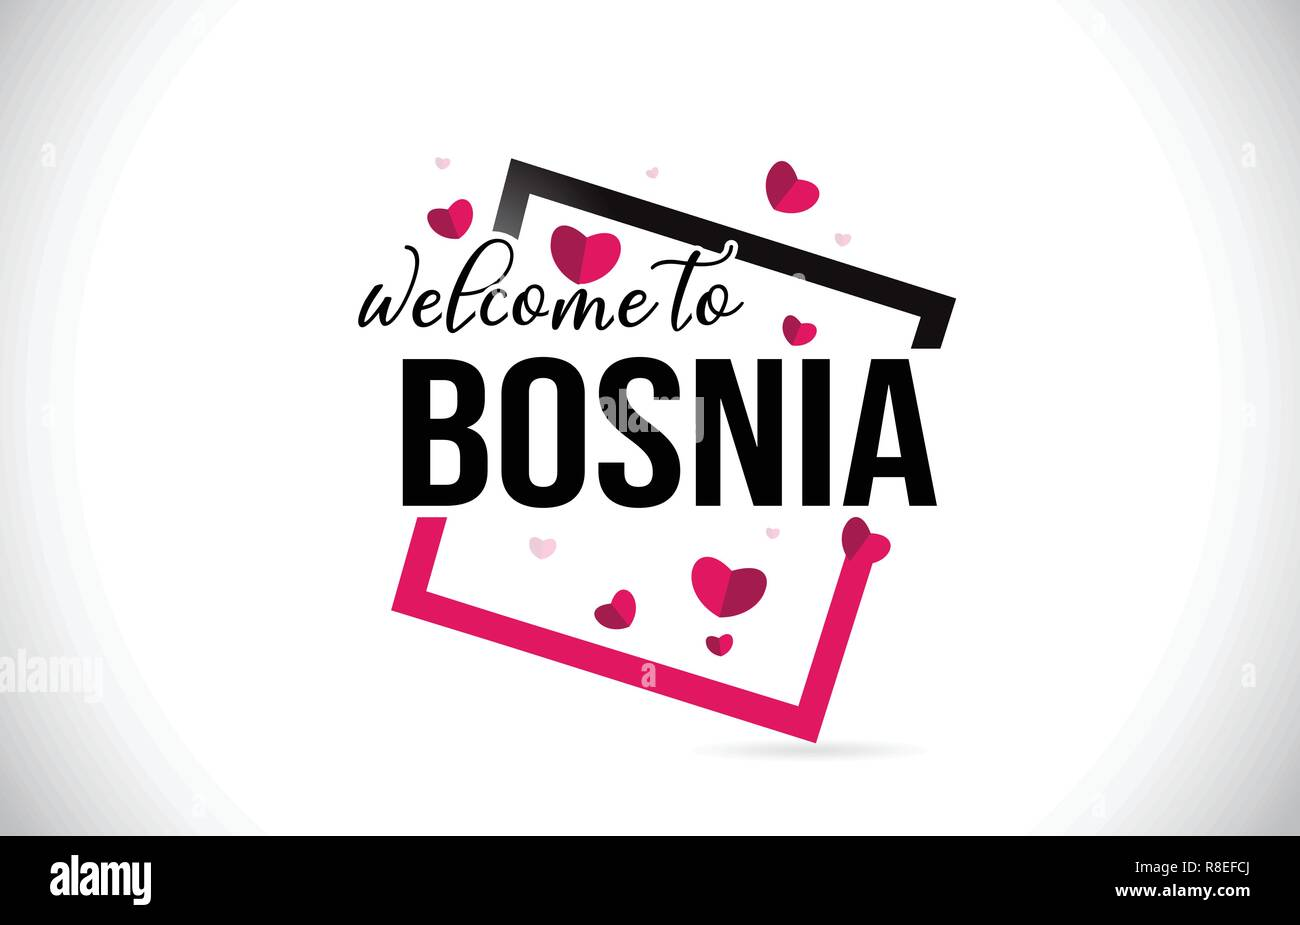 Bosnia Welcome To Word Text with Handwritten Font and  Red Hearts Square Design Illustration Vector. - Stock Vector